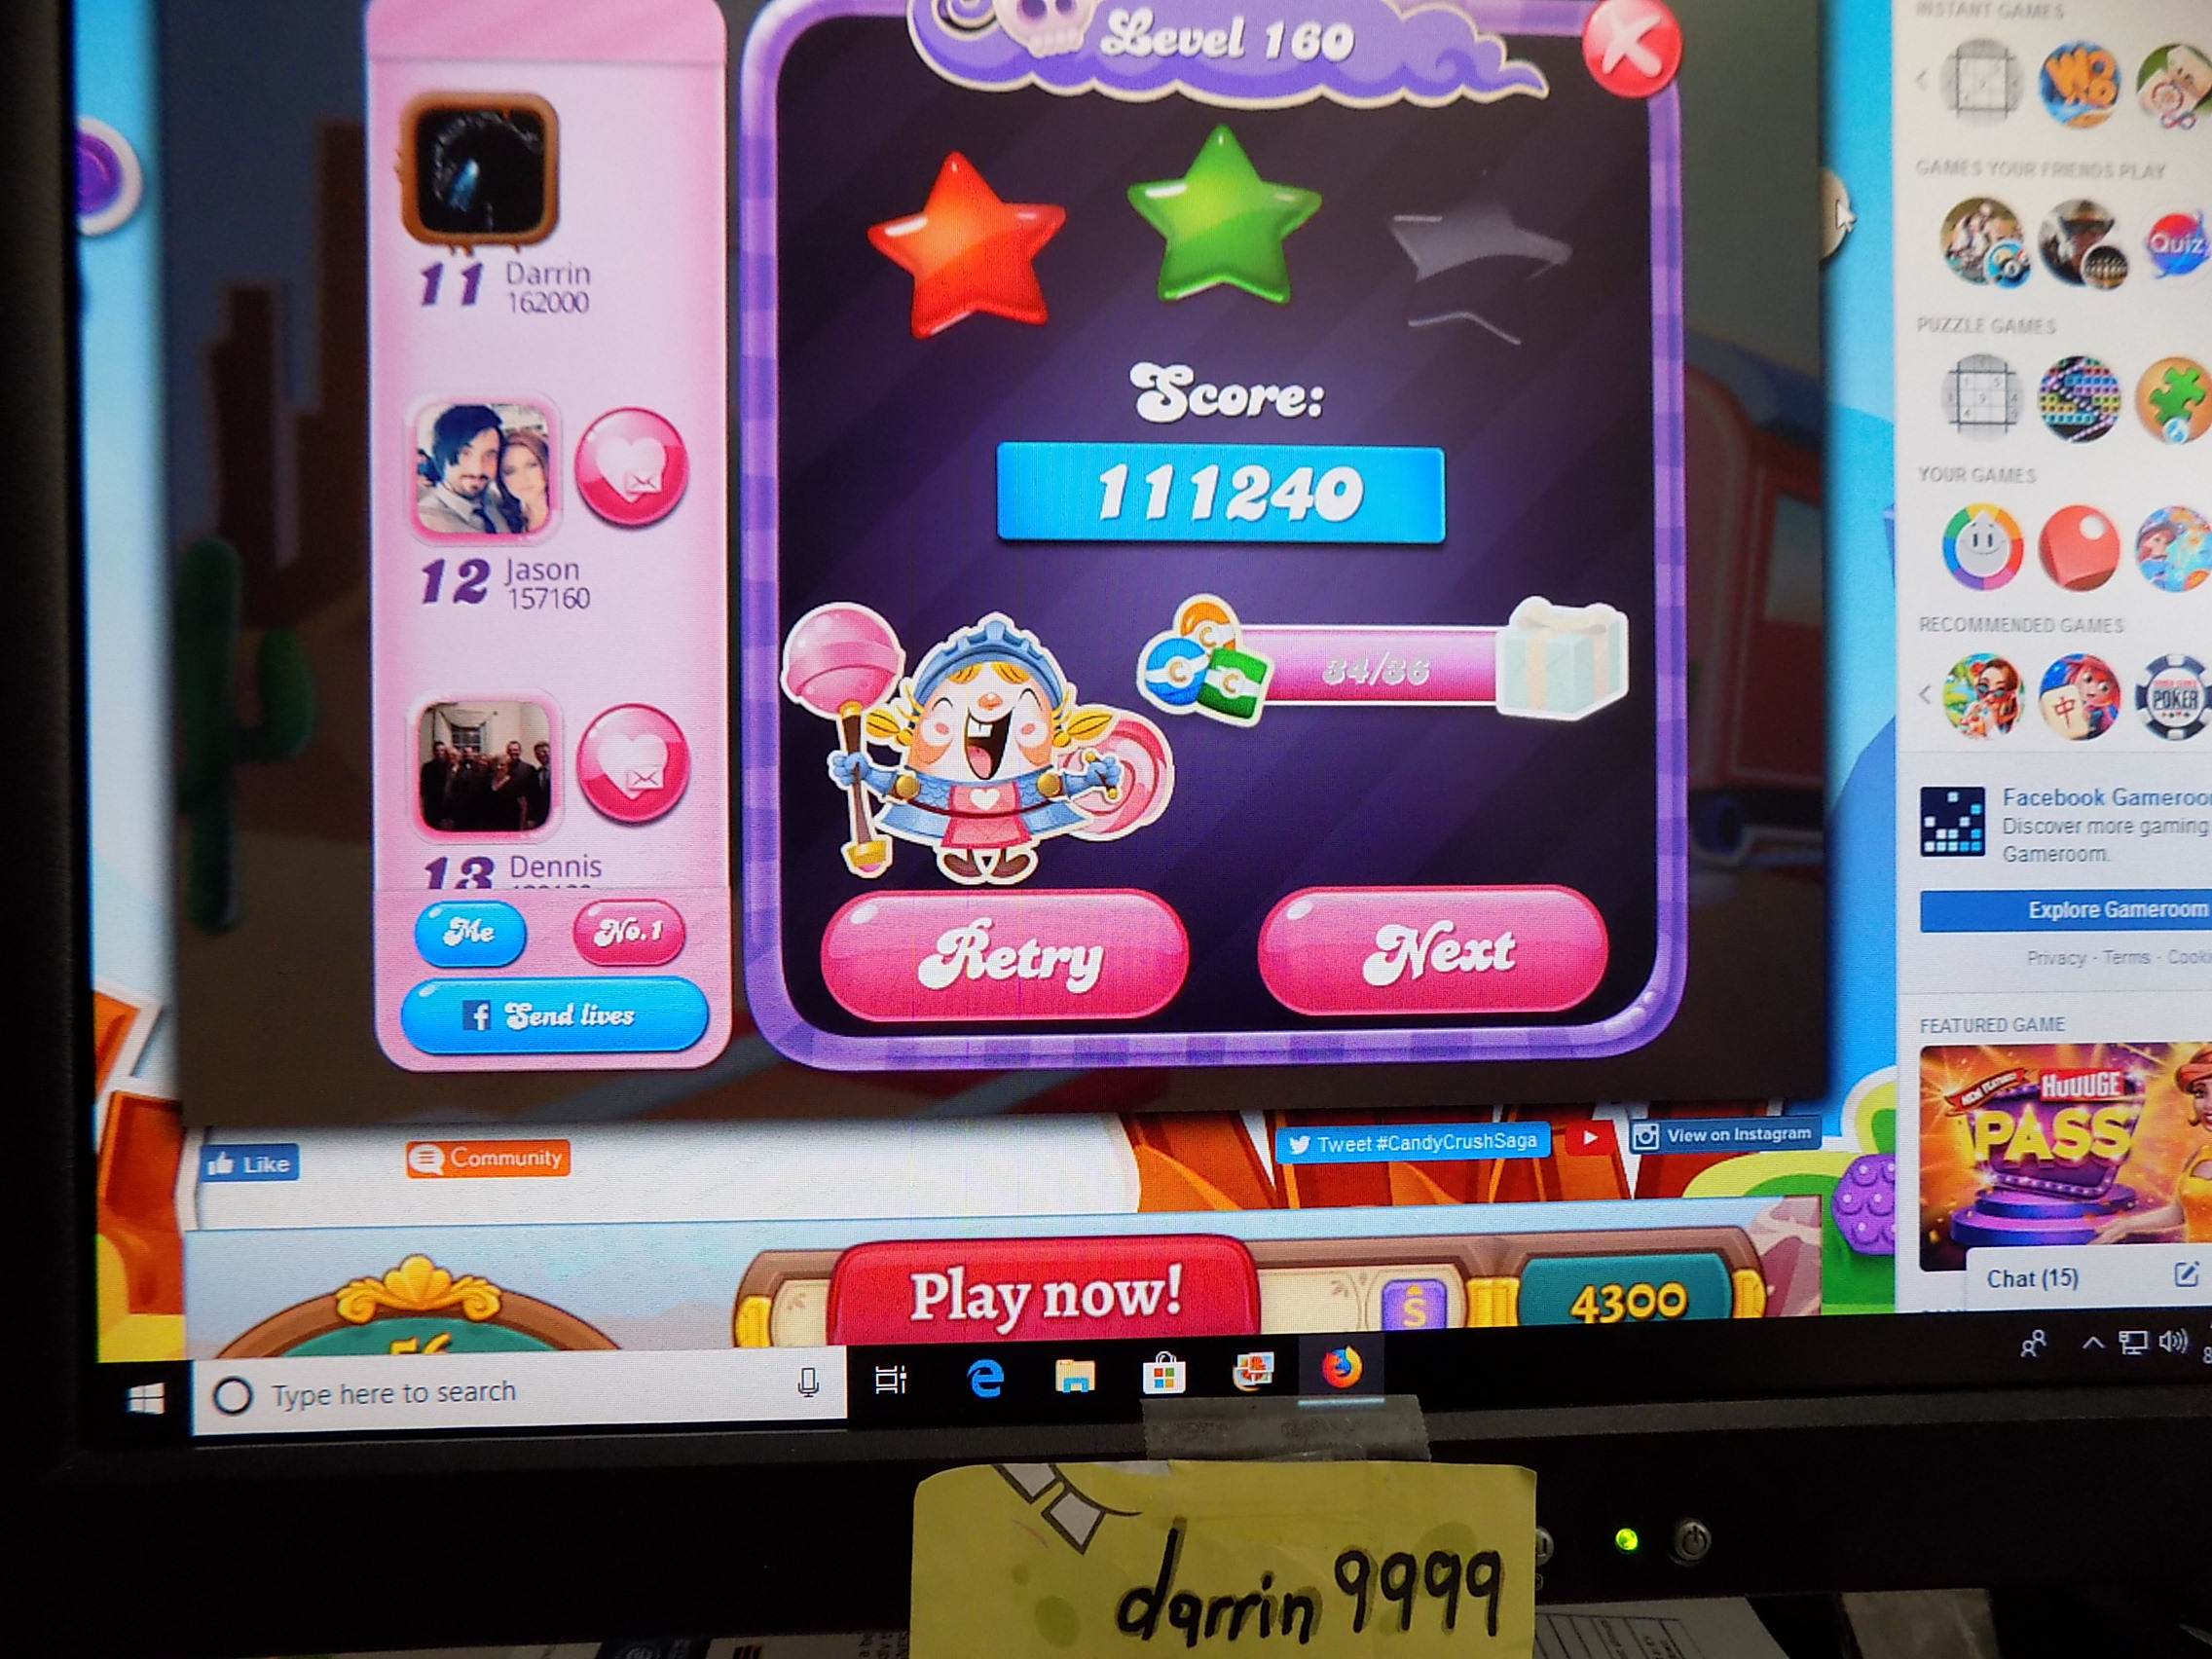 darrin9999: Candy Crush Saga: Level 160 (Web) 111,240 points on 2019-09-06 16:38:40